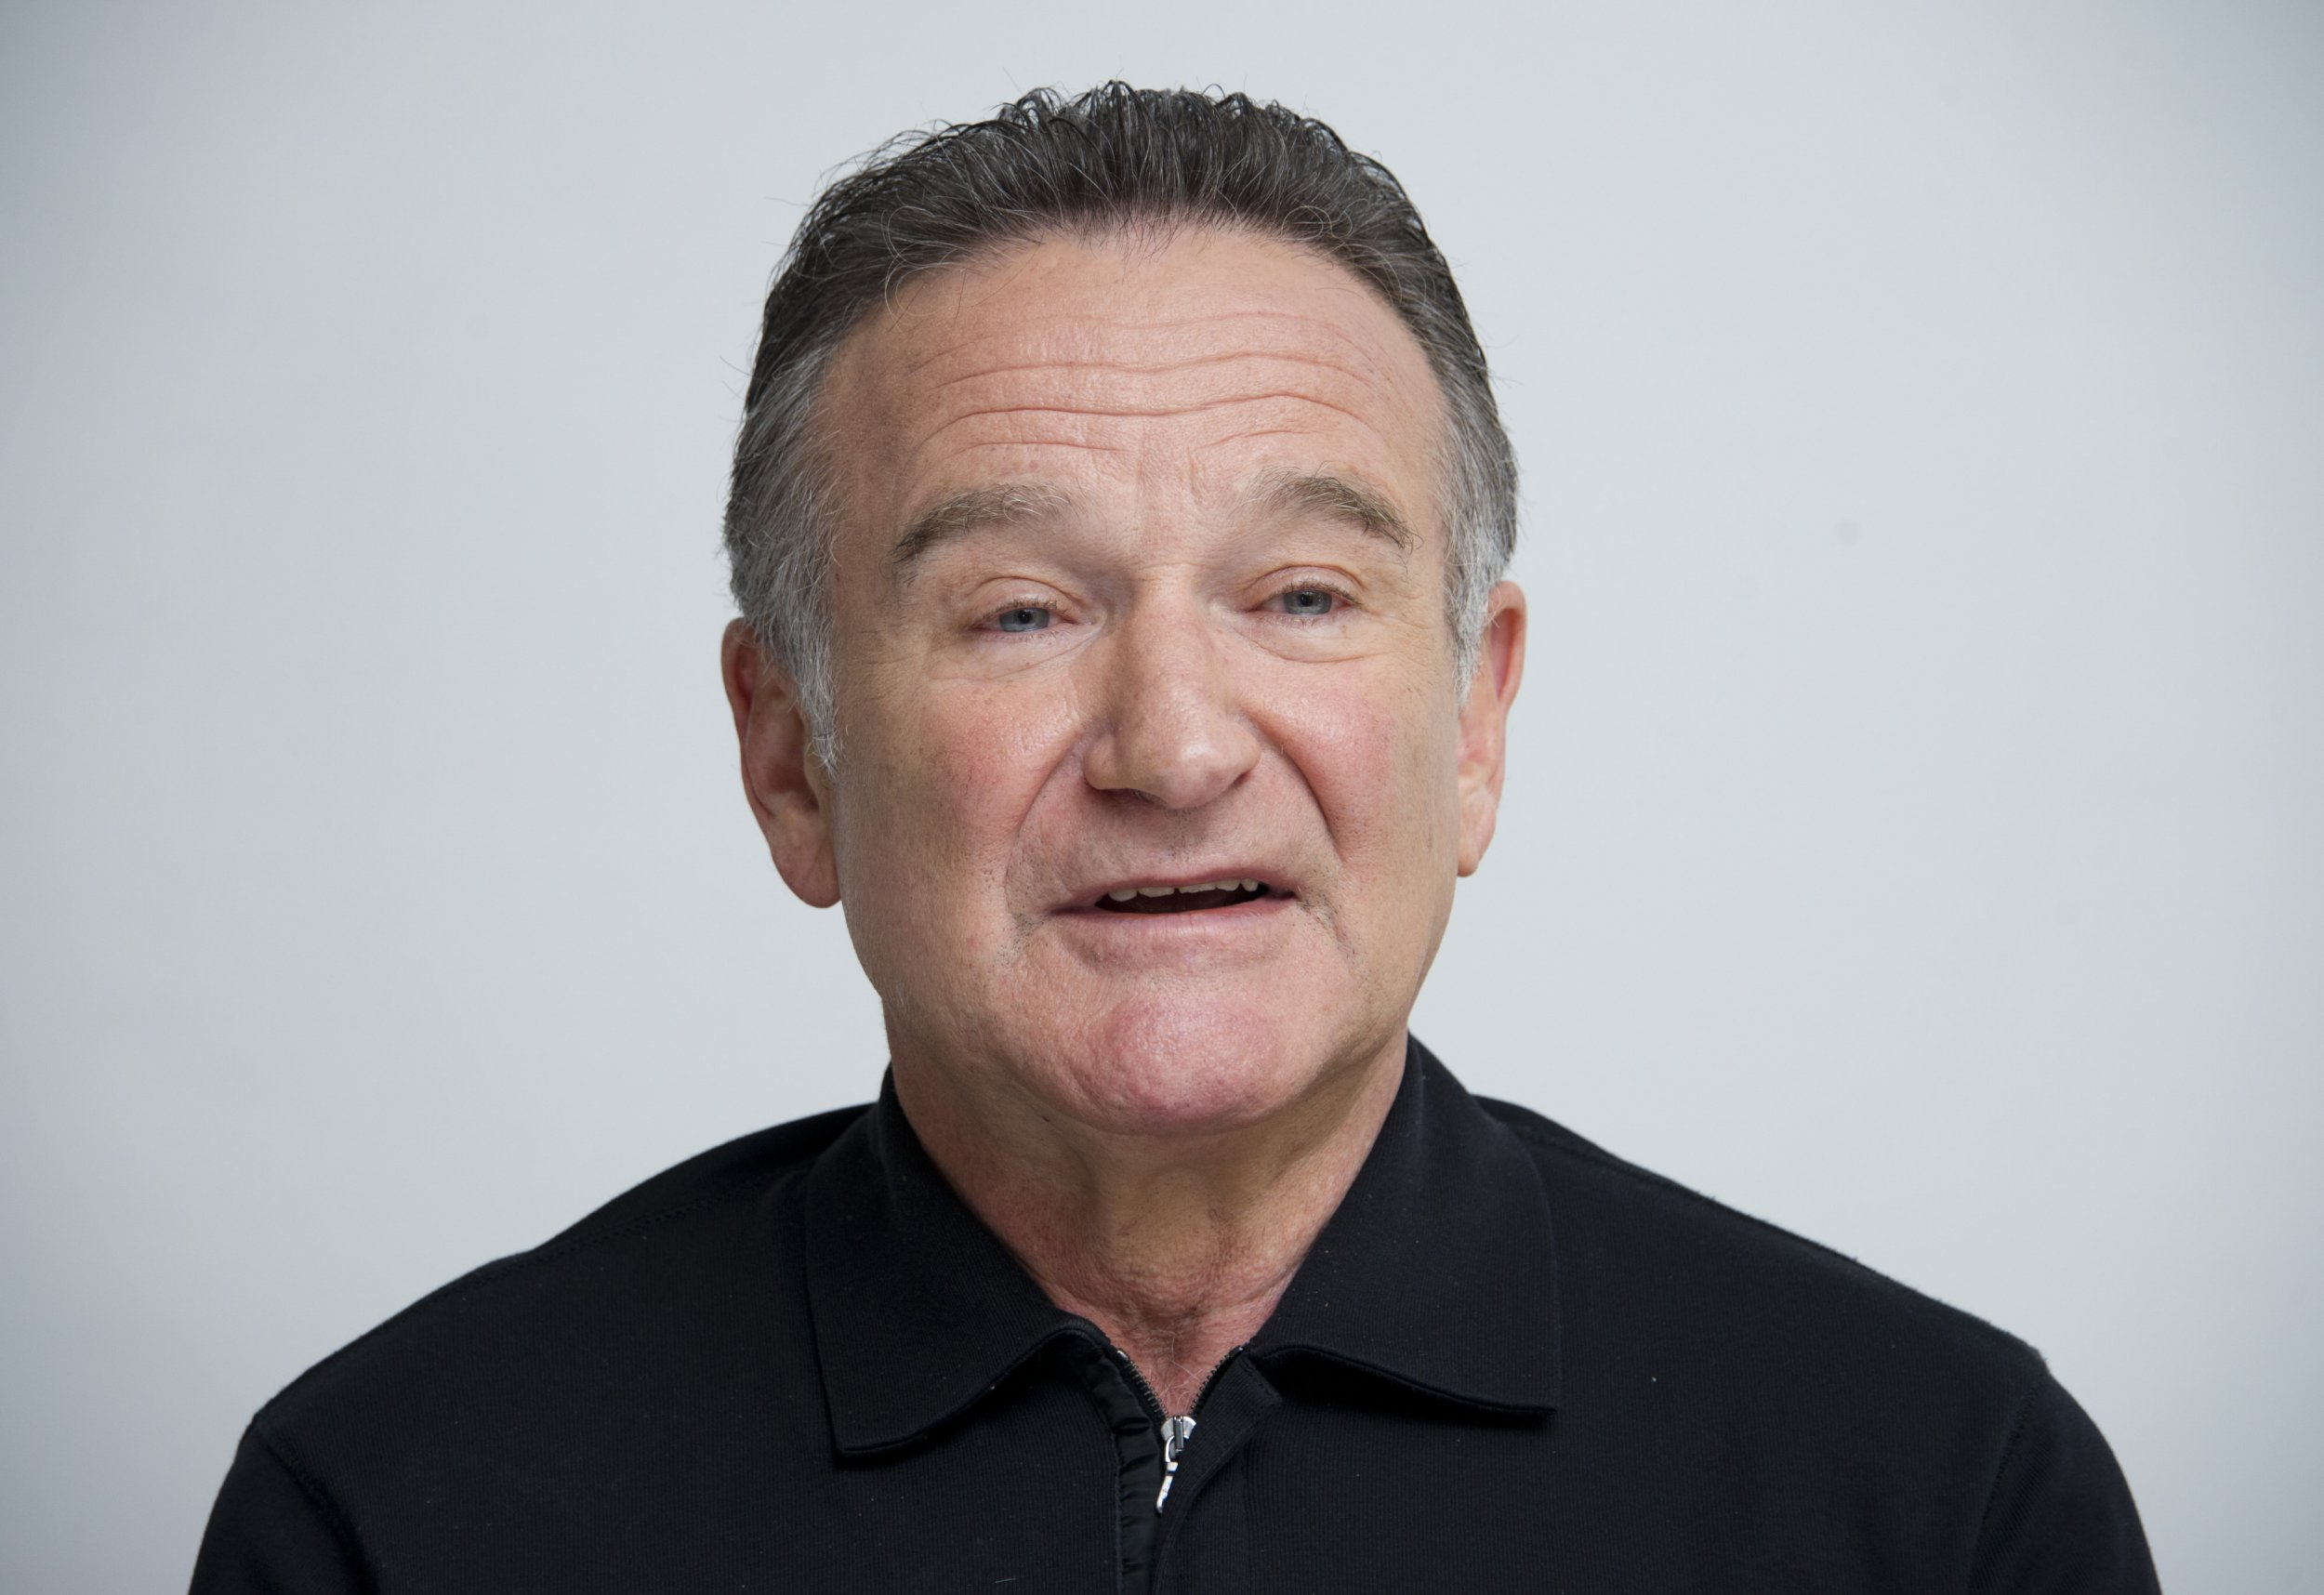 Suicide rates spiked in months after Robin Williams died